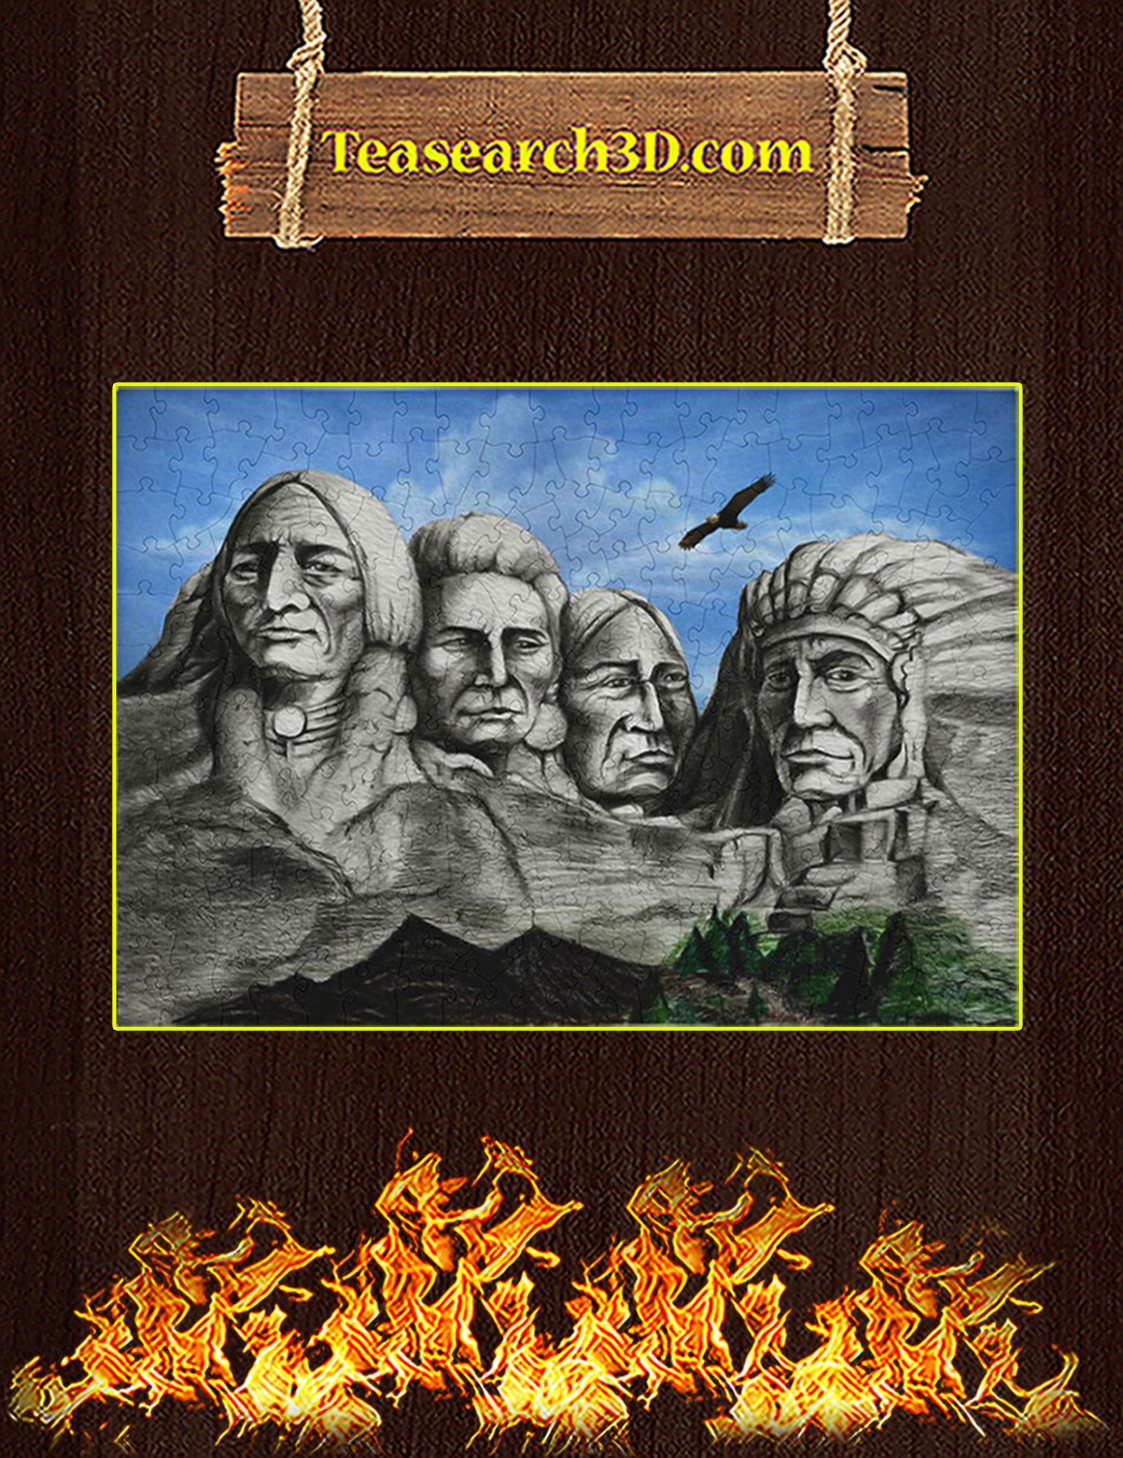 The original founding fathers puzzles pic 3